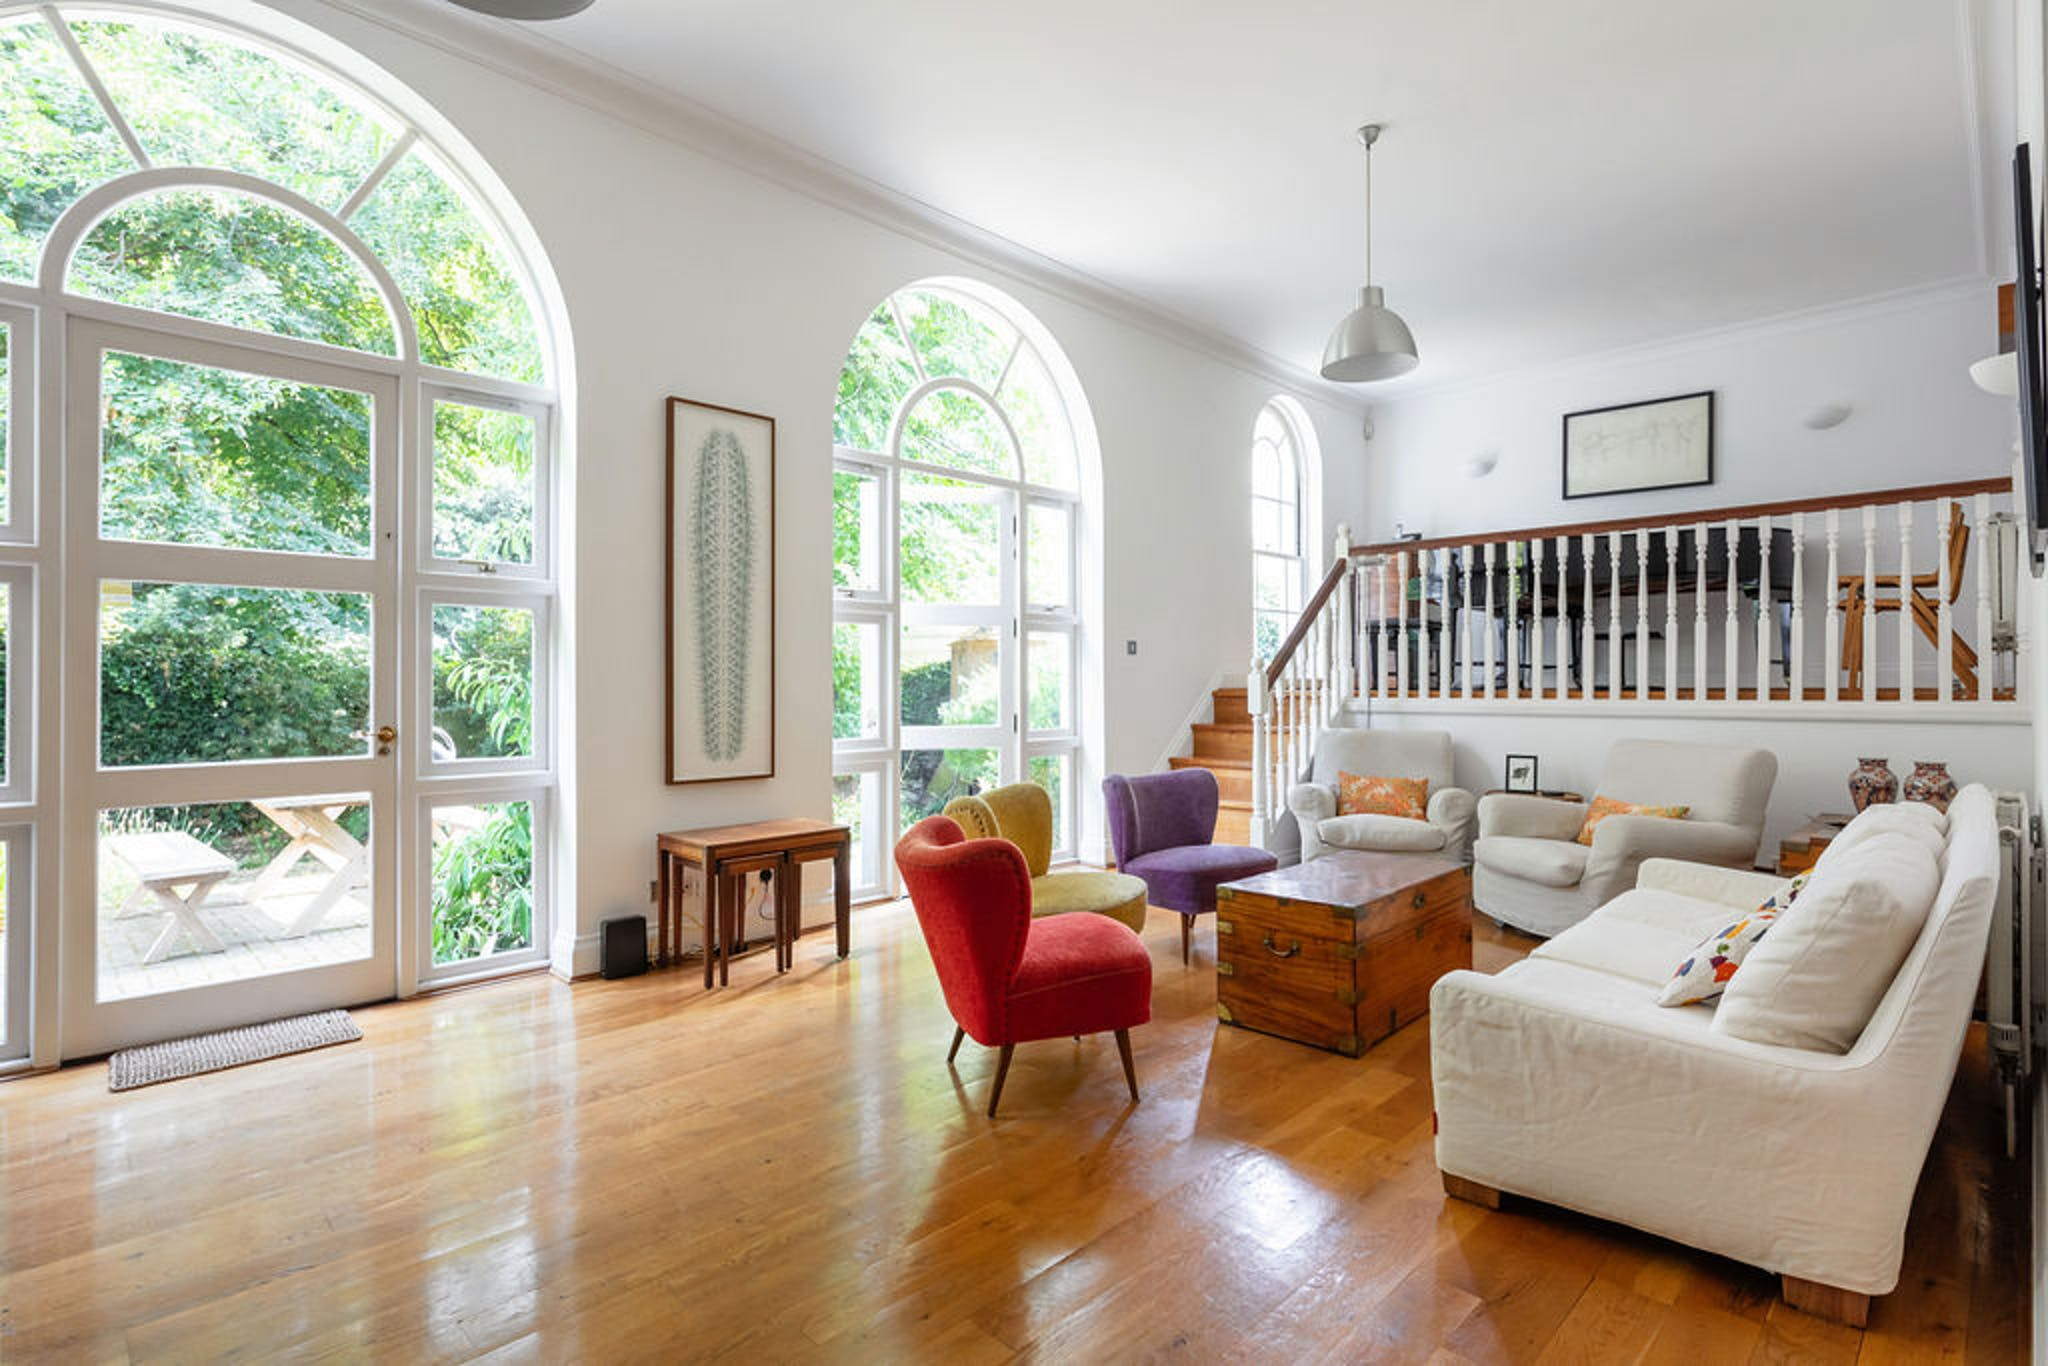 Holiday apartment London, Canonbury Park South, Holiday apartment for rent